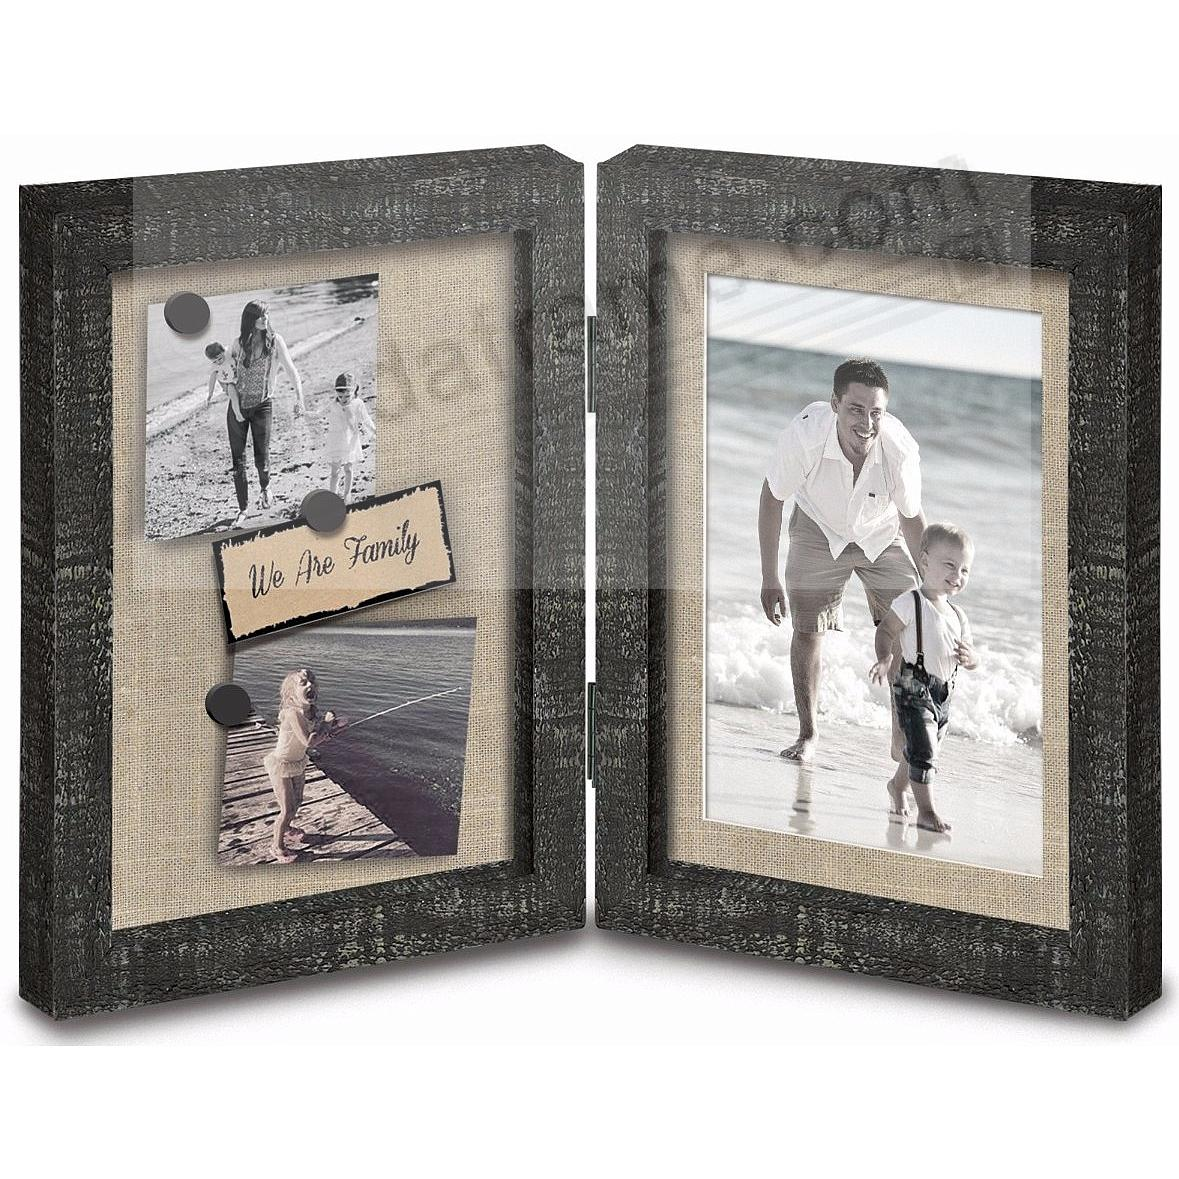 KENDALL Hinged shadowbox in Natural/White/Black Stain by Prinz